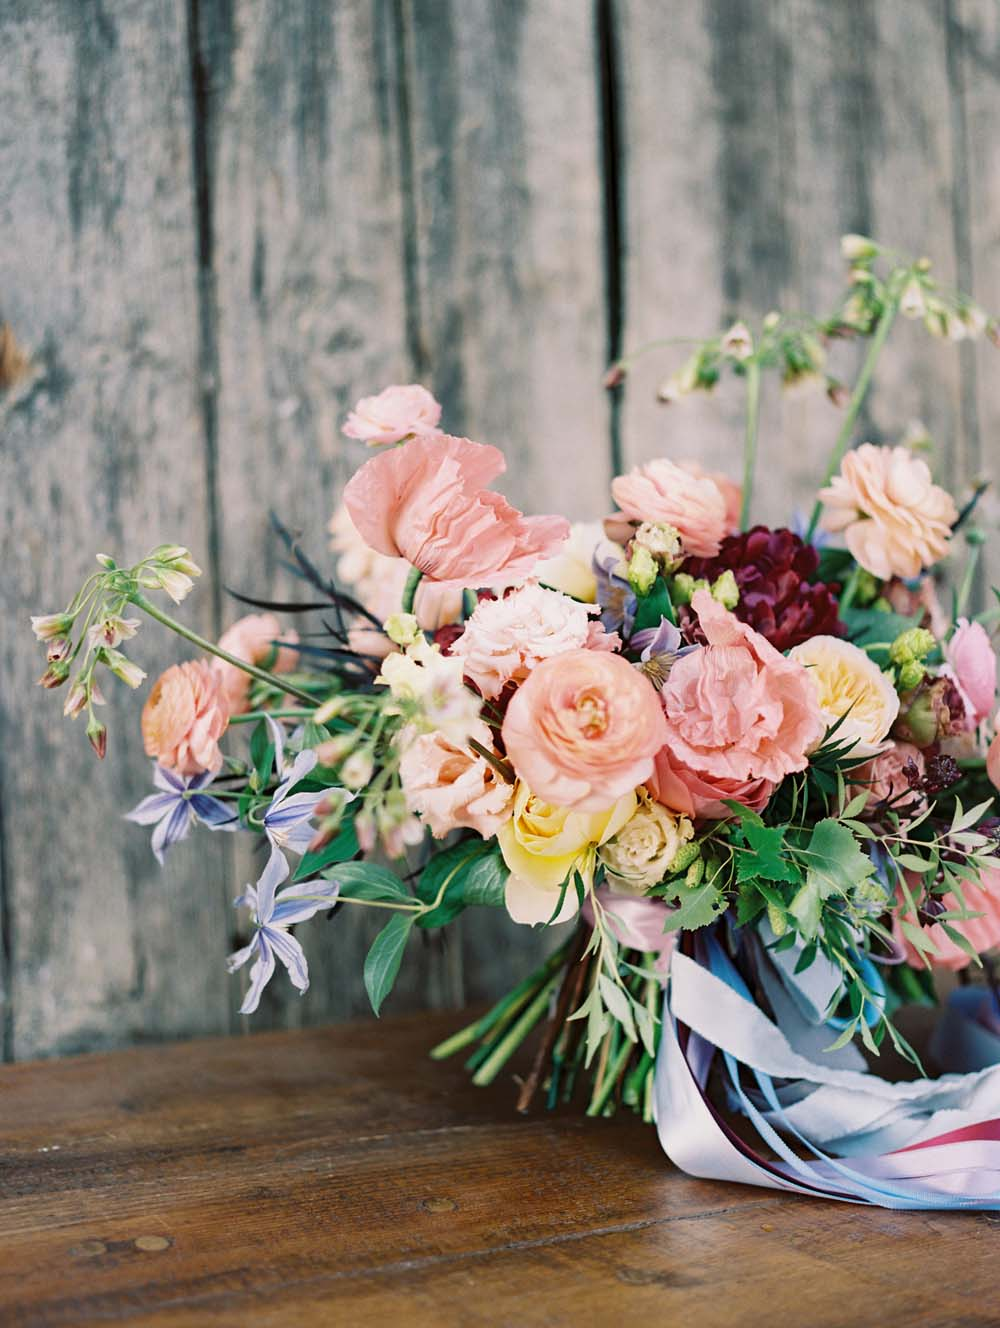 A Quirky Non-Traditional Wedding in Kitchener, Ontario - Floral table arrangement